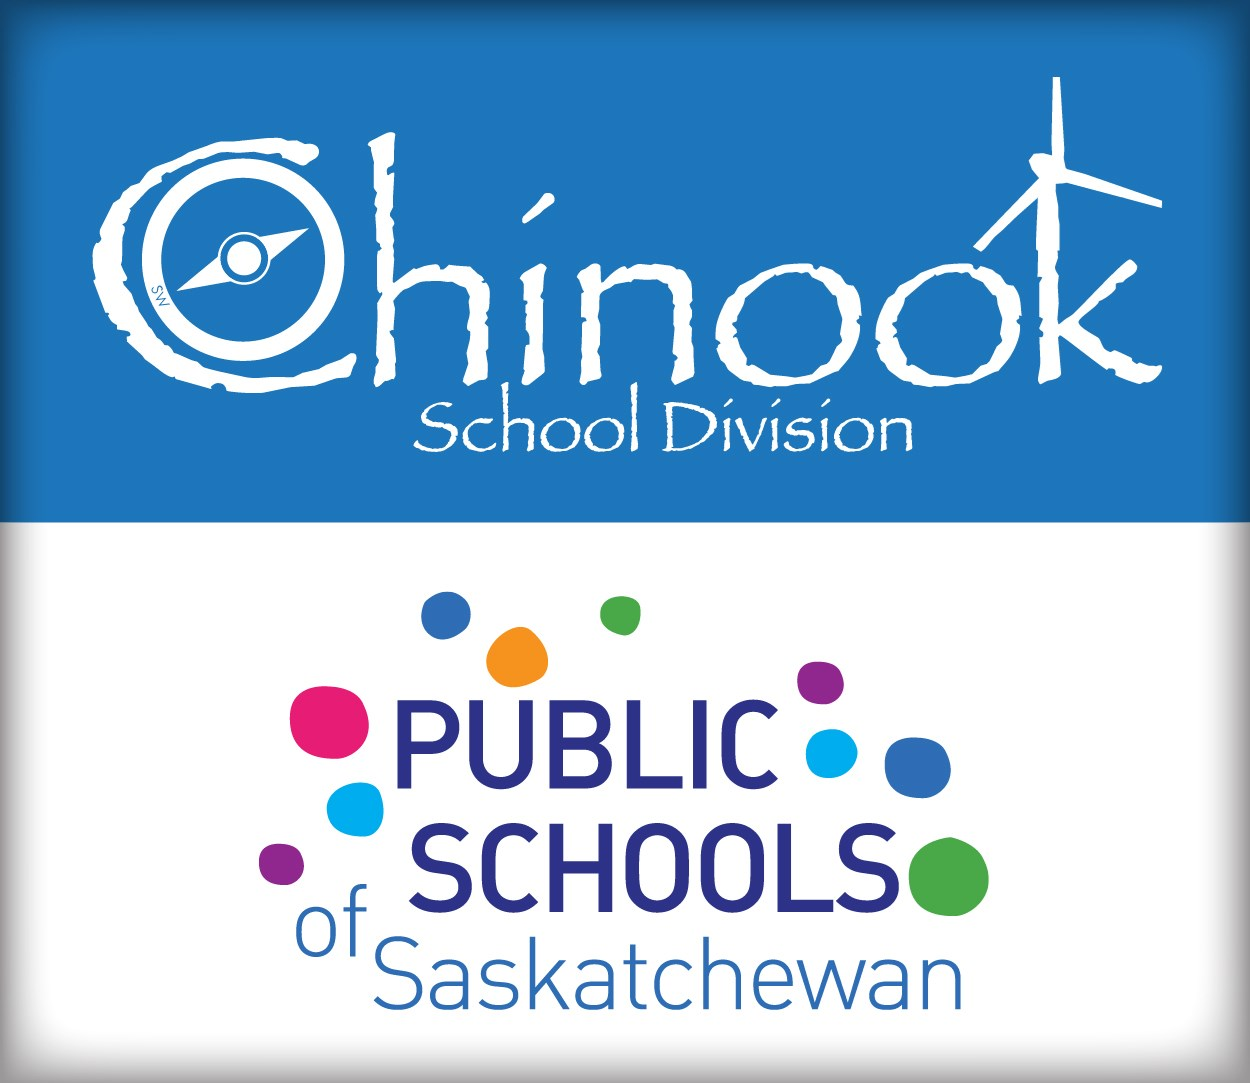 Chinook%20-%20Public%20Schools%20of%20SK%20graphic-01.jpg